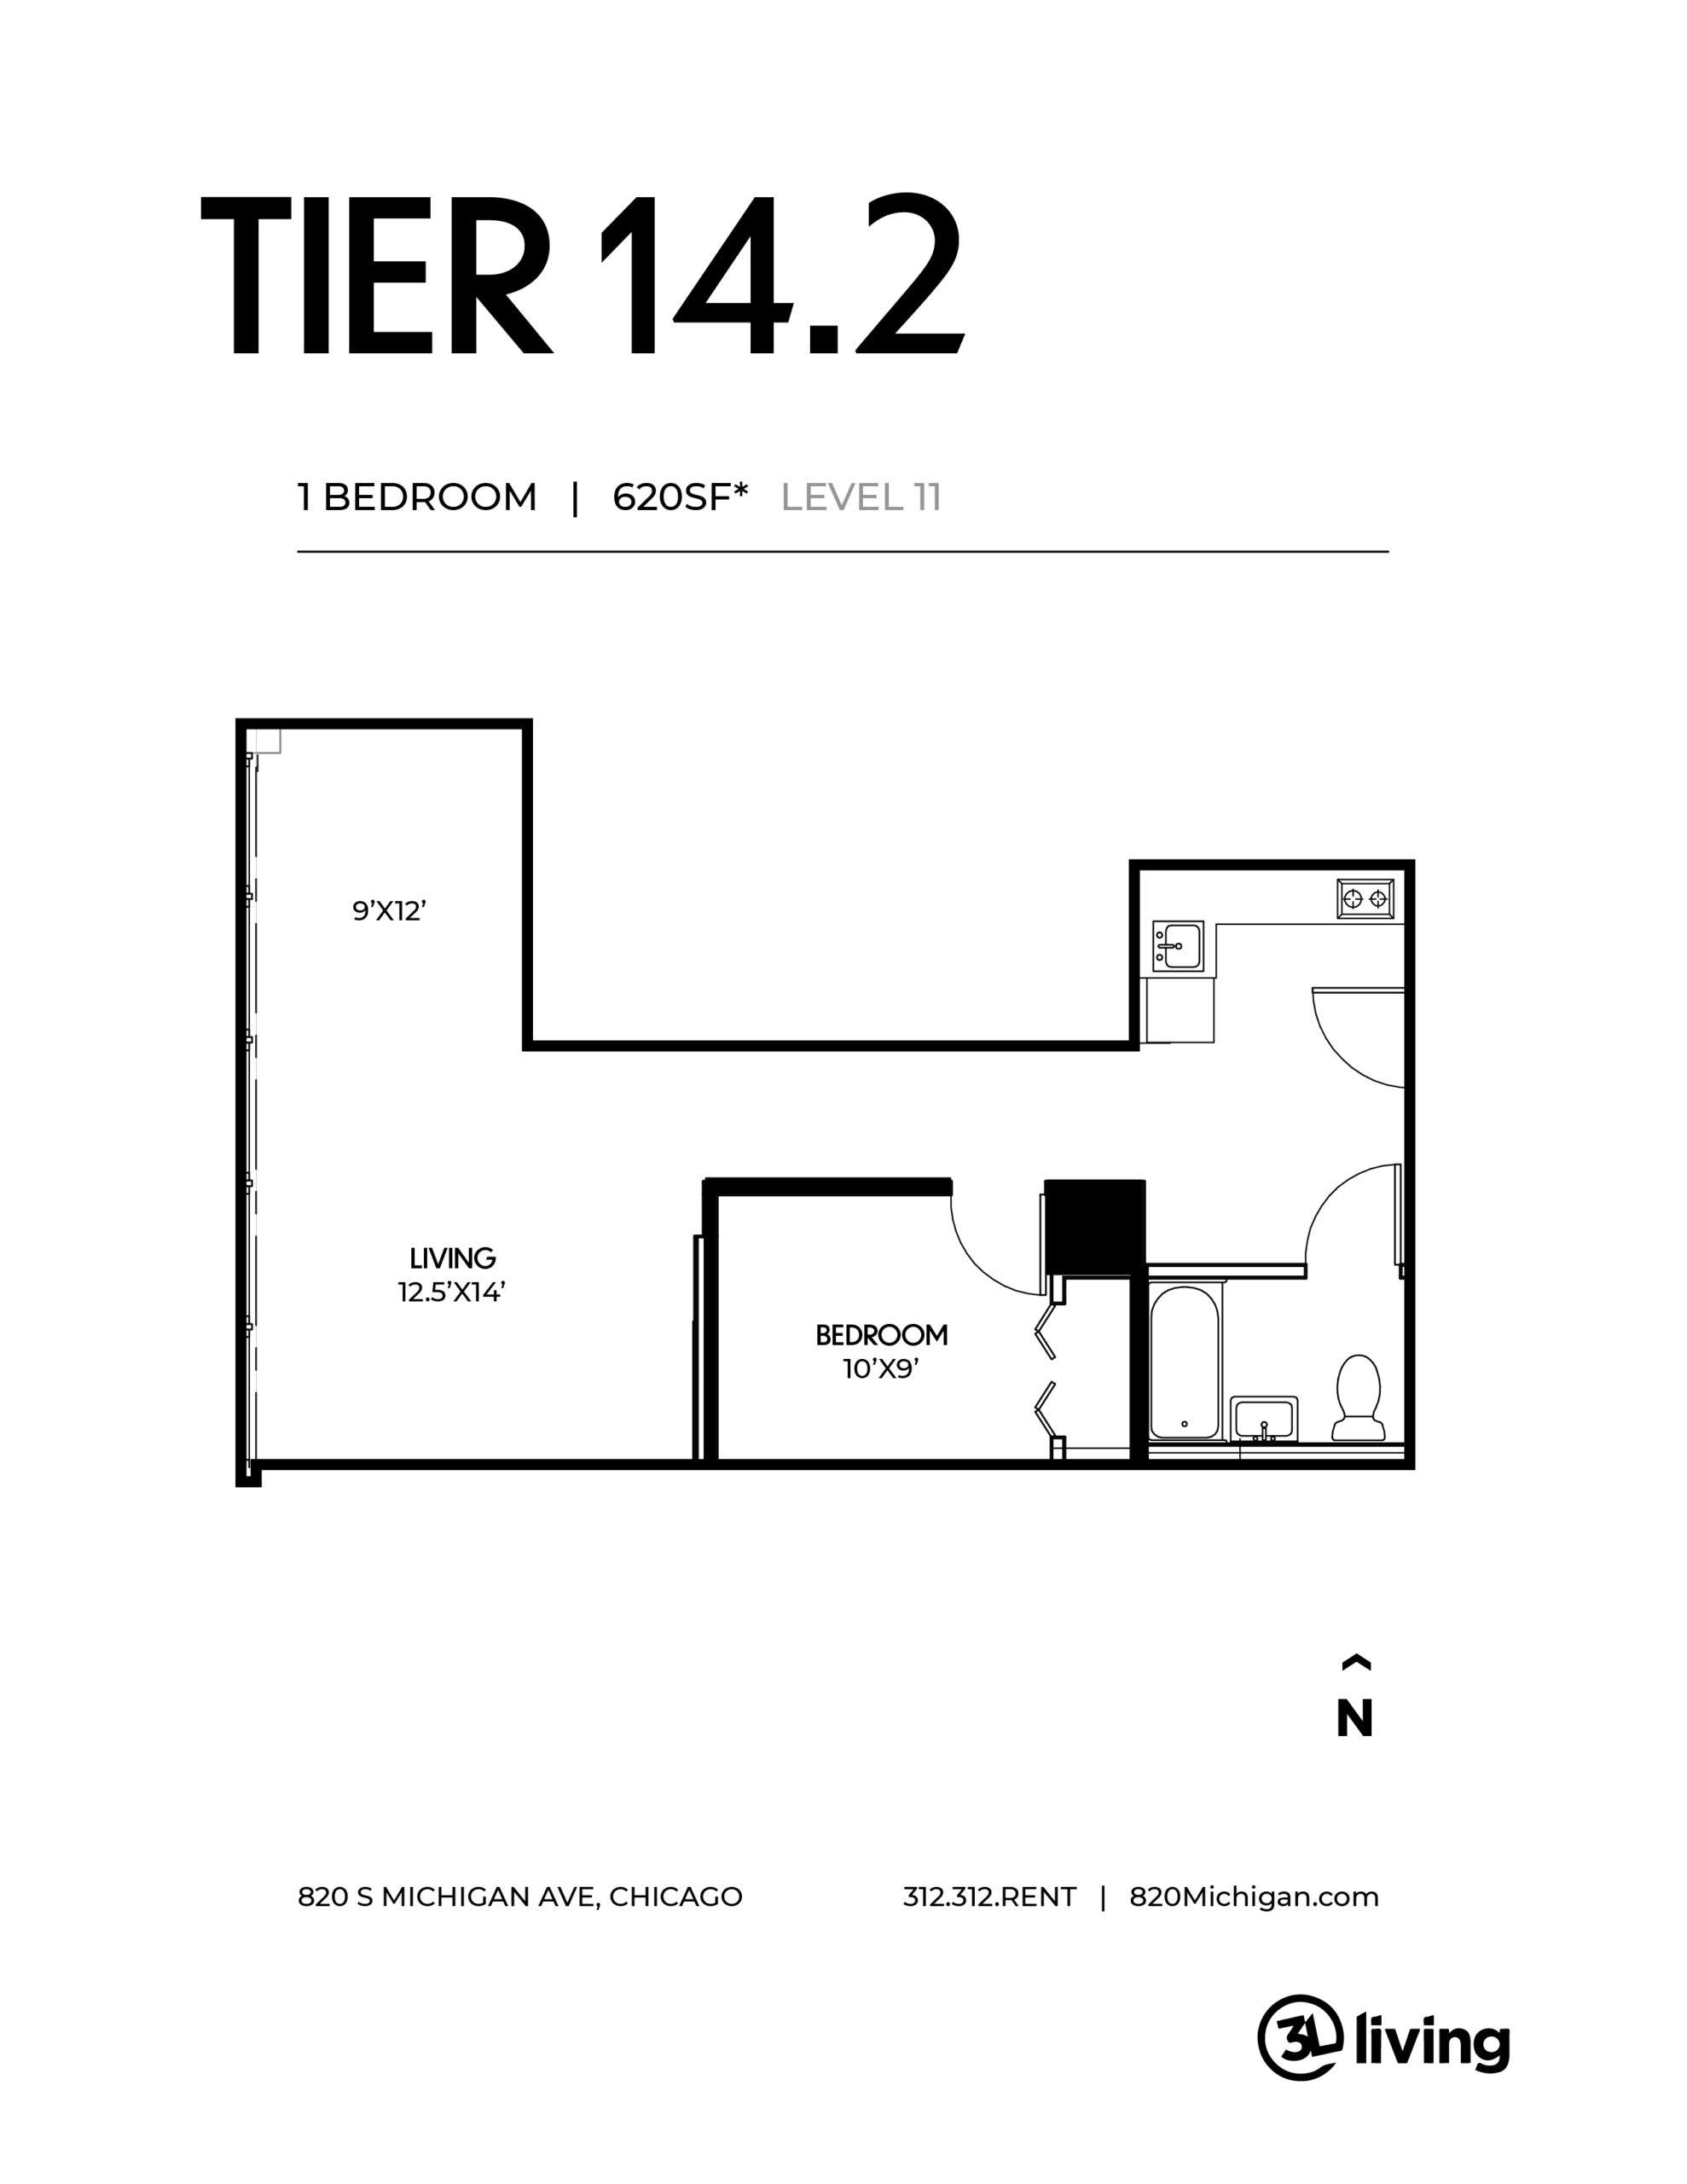 820SM-Floorplans-Measurements-R3-14.2